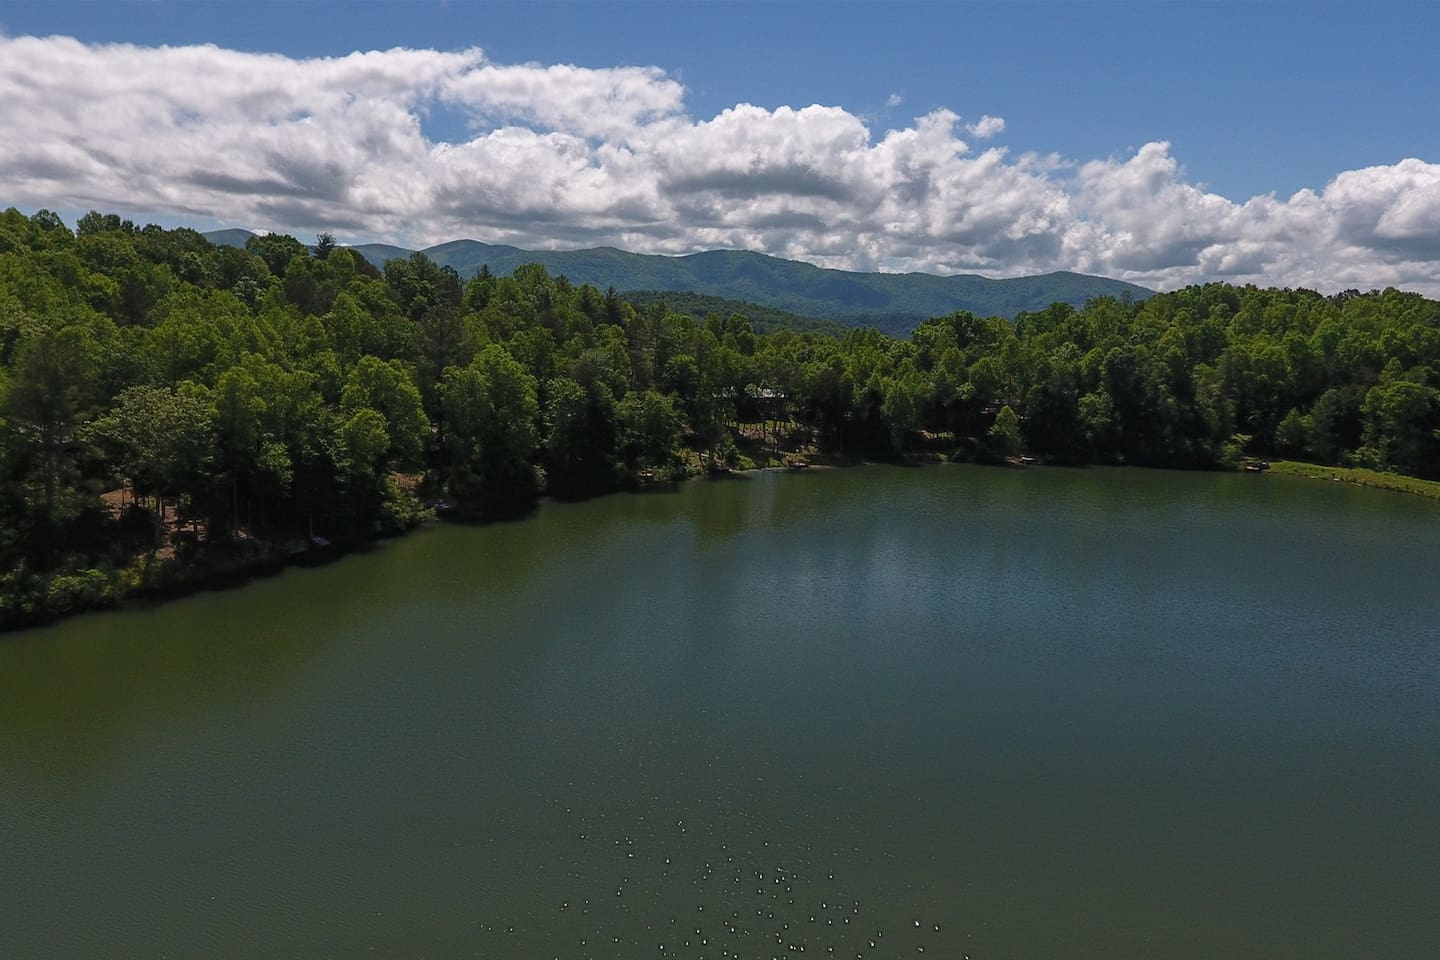 View of Lake Buckhorn and mountains.